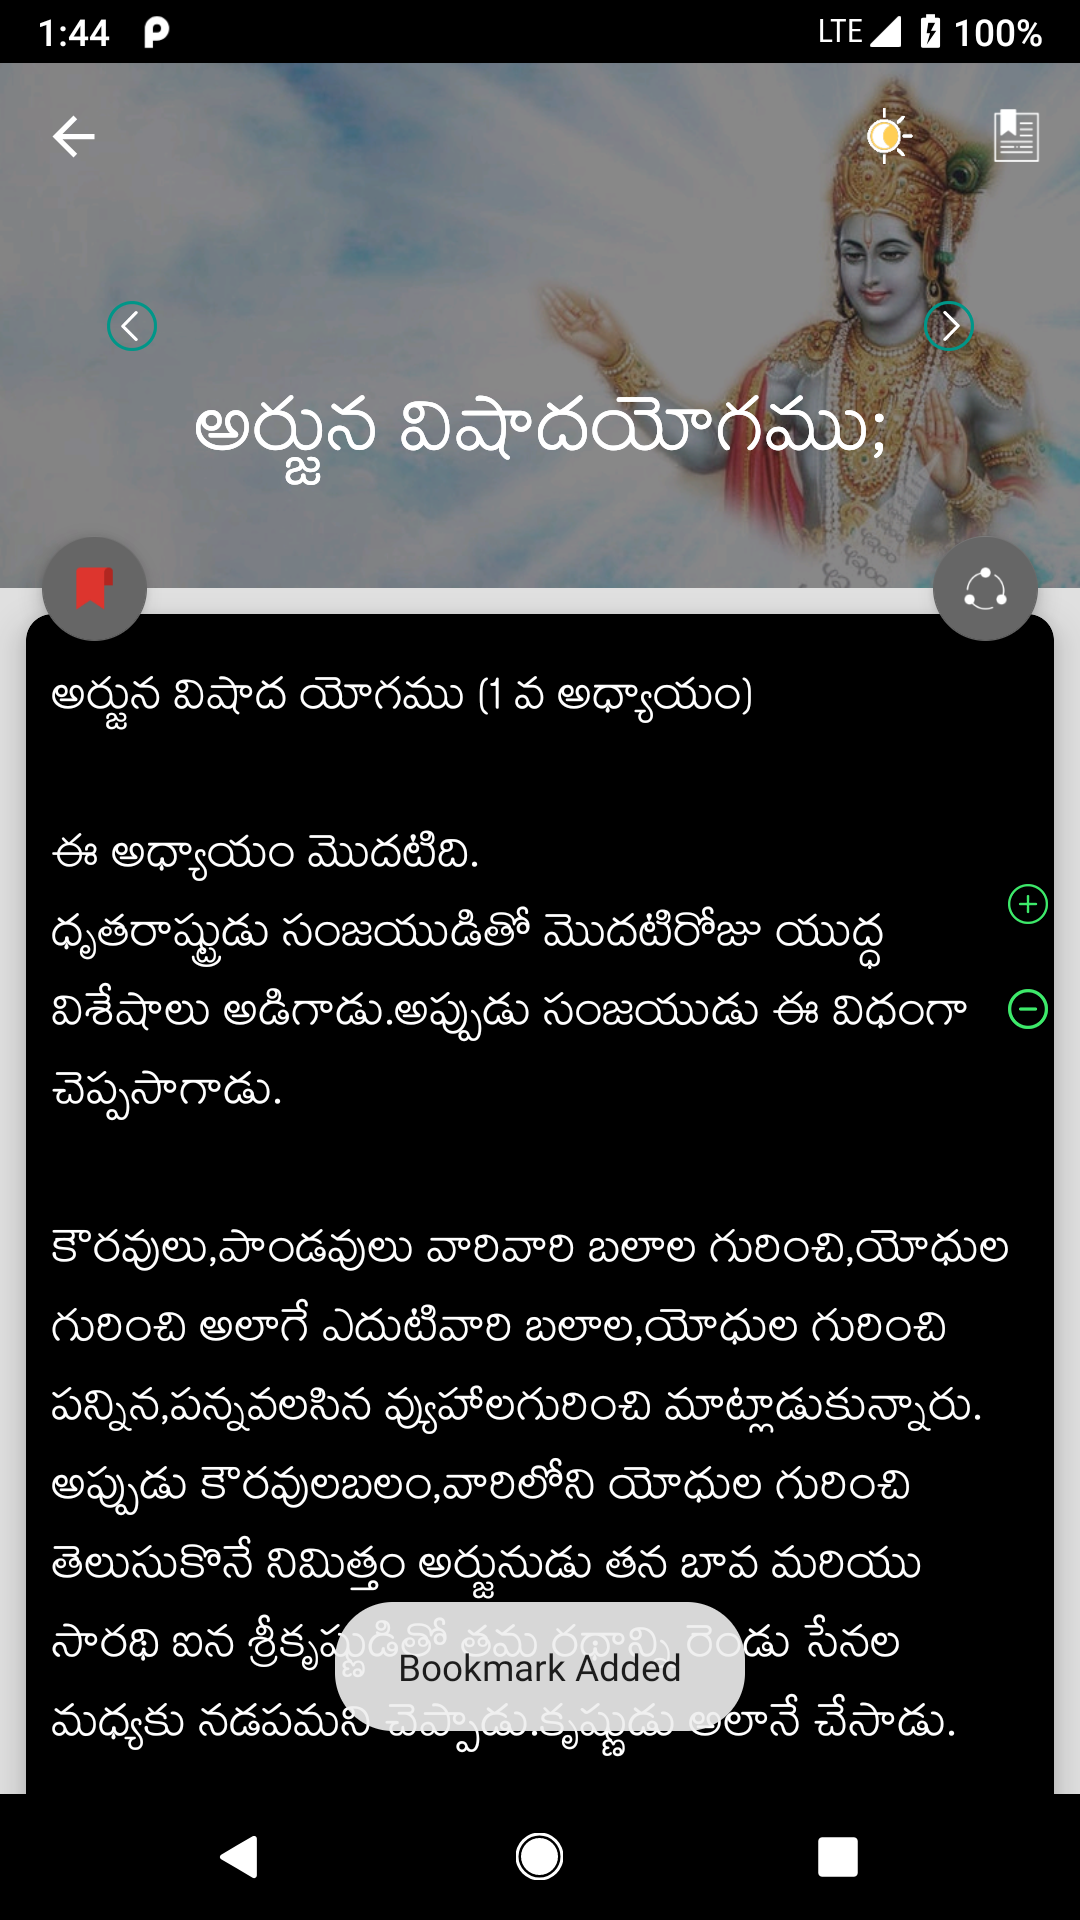 Bhagavad Gita As It Is Pdf In Telugu